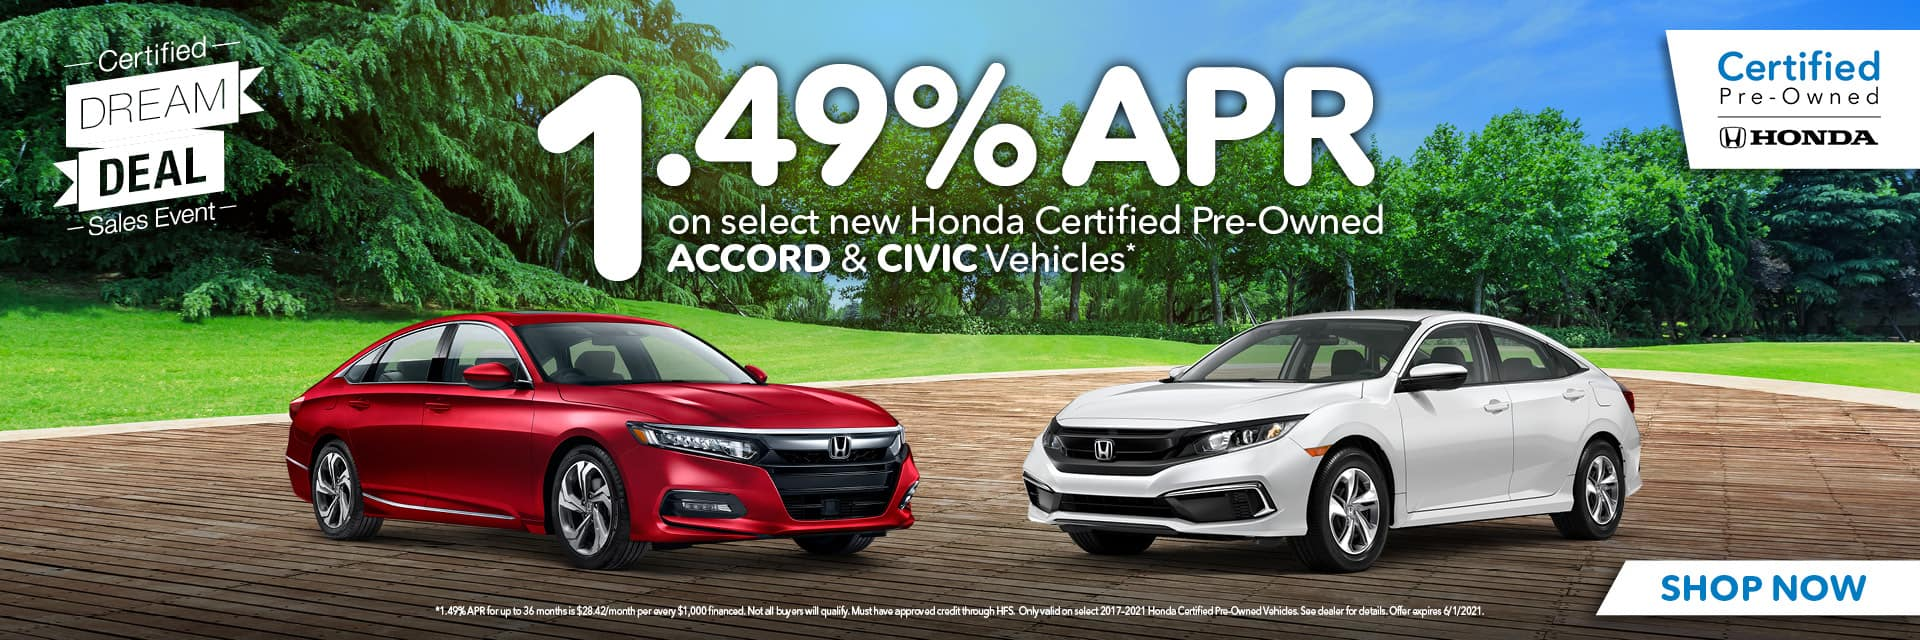 Certified Accord Civic APR Offer